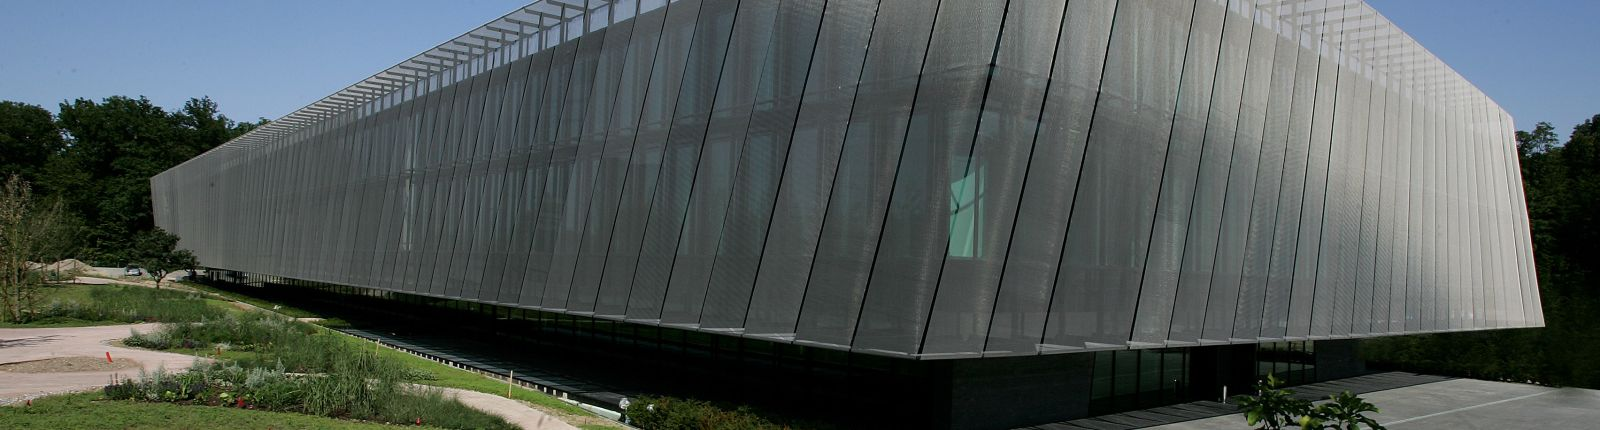 Architectural mesh façade: FIFA headquarters